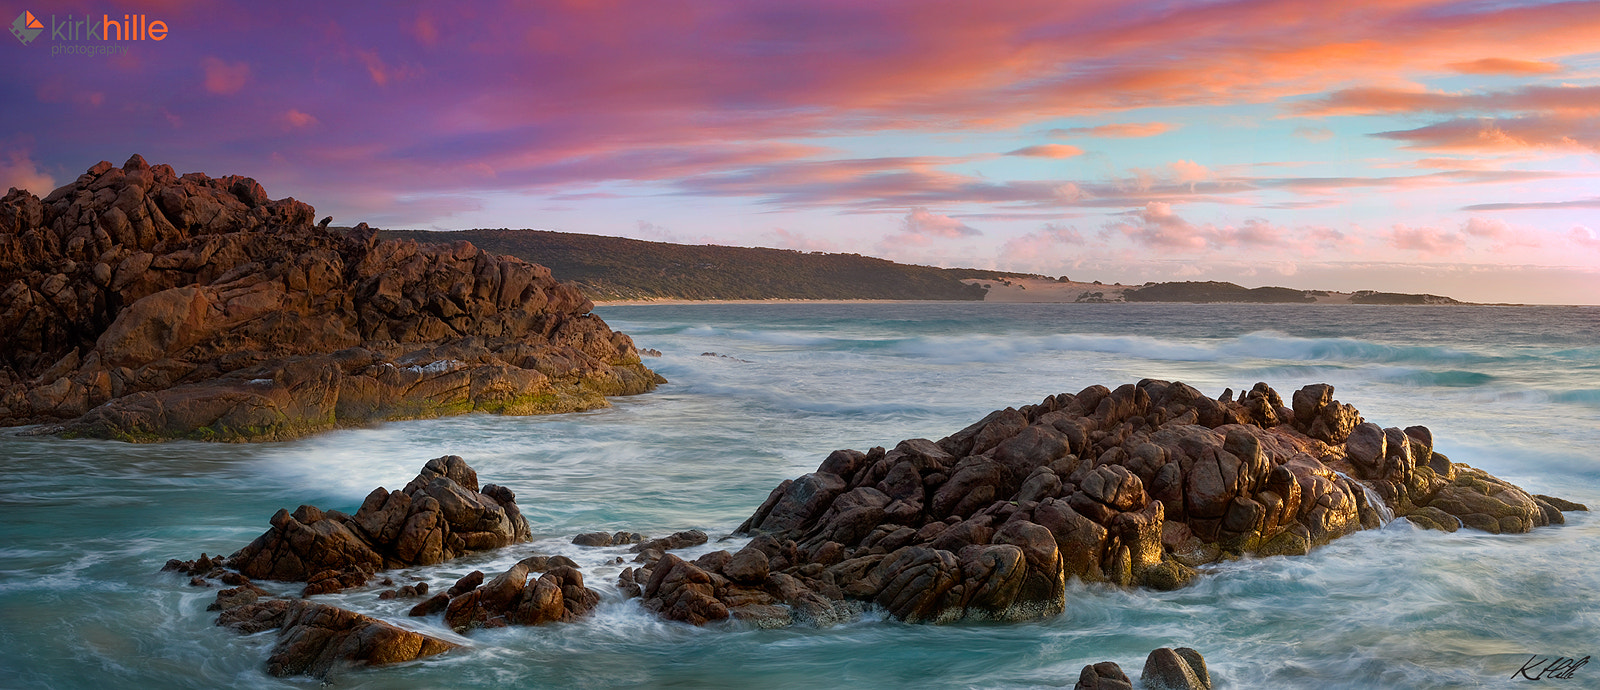 Photograph Injidup Beach by Kirk Hille on 500px